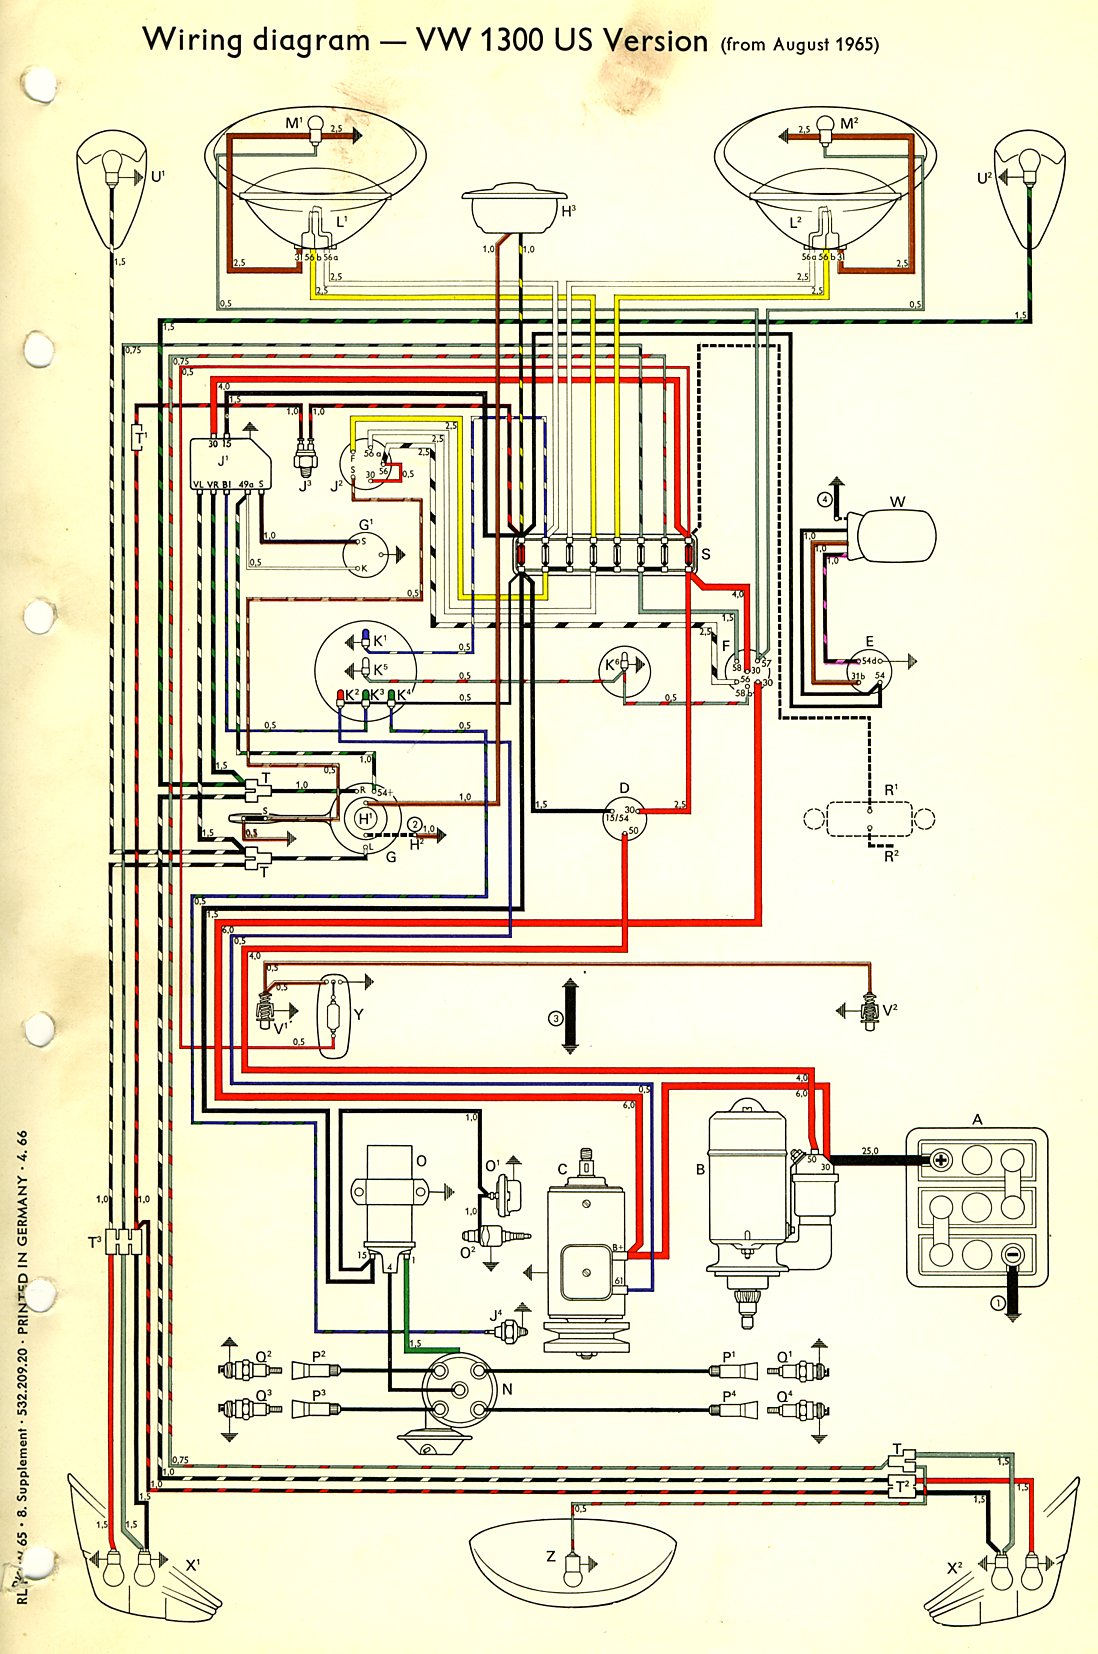 Type 1 Wiring Diagrams 1967 Malibu Instrument Panel Diagram